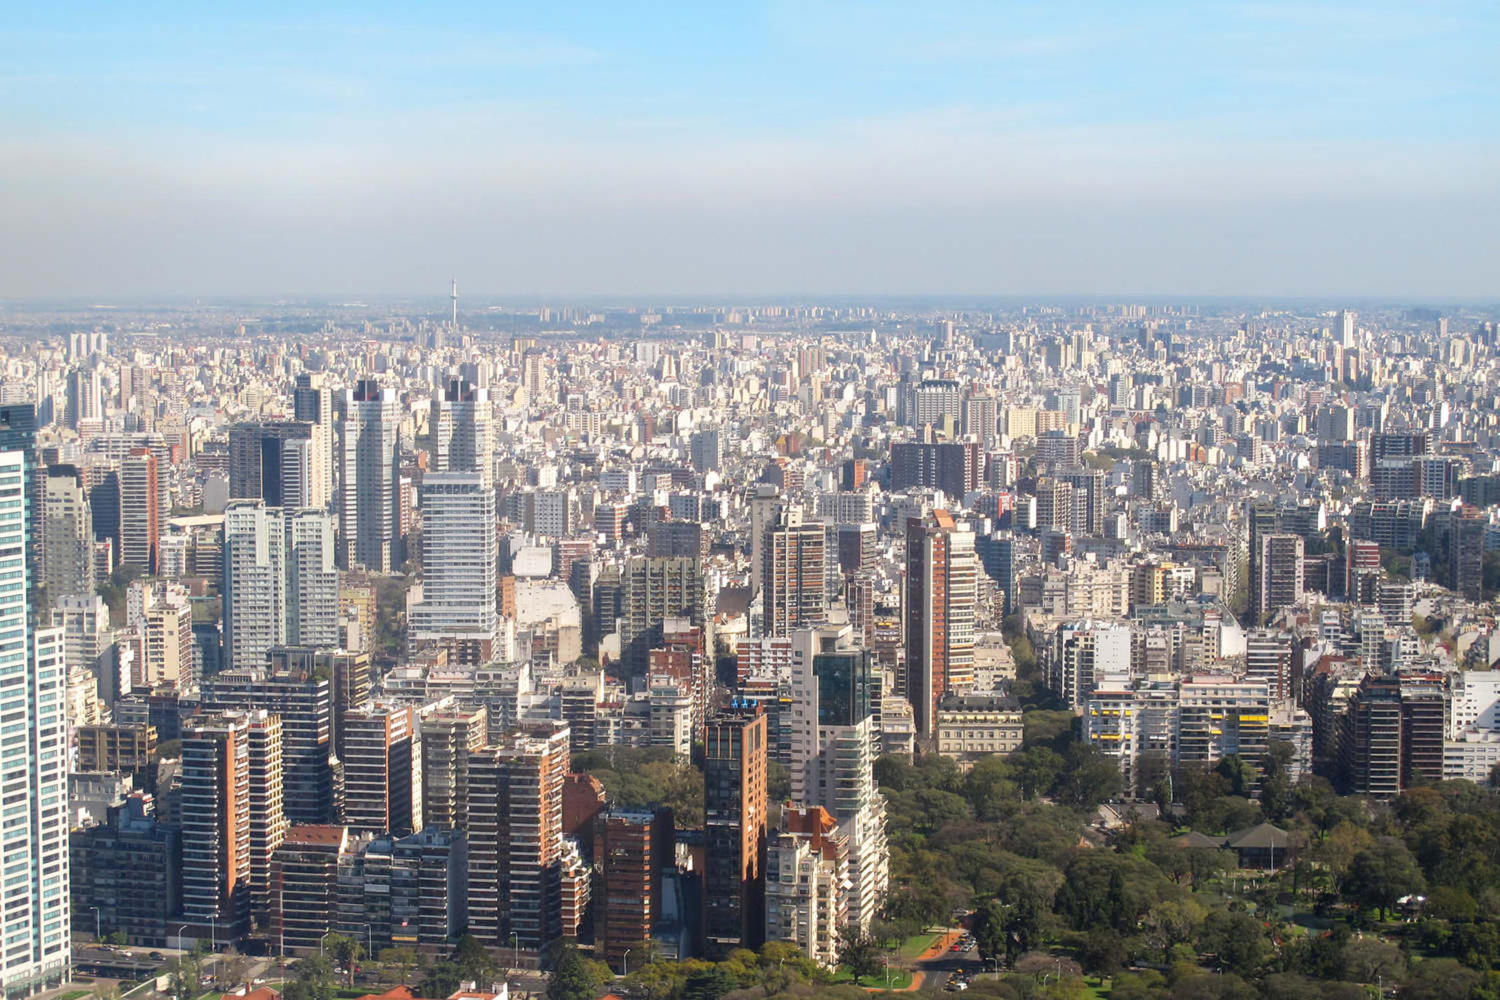 Aerial photo of Buenos Aires